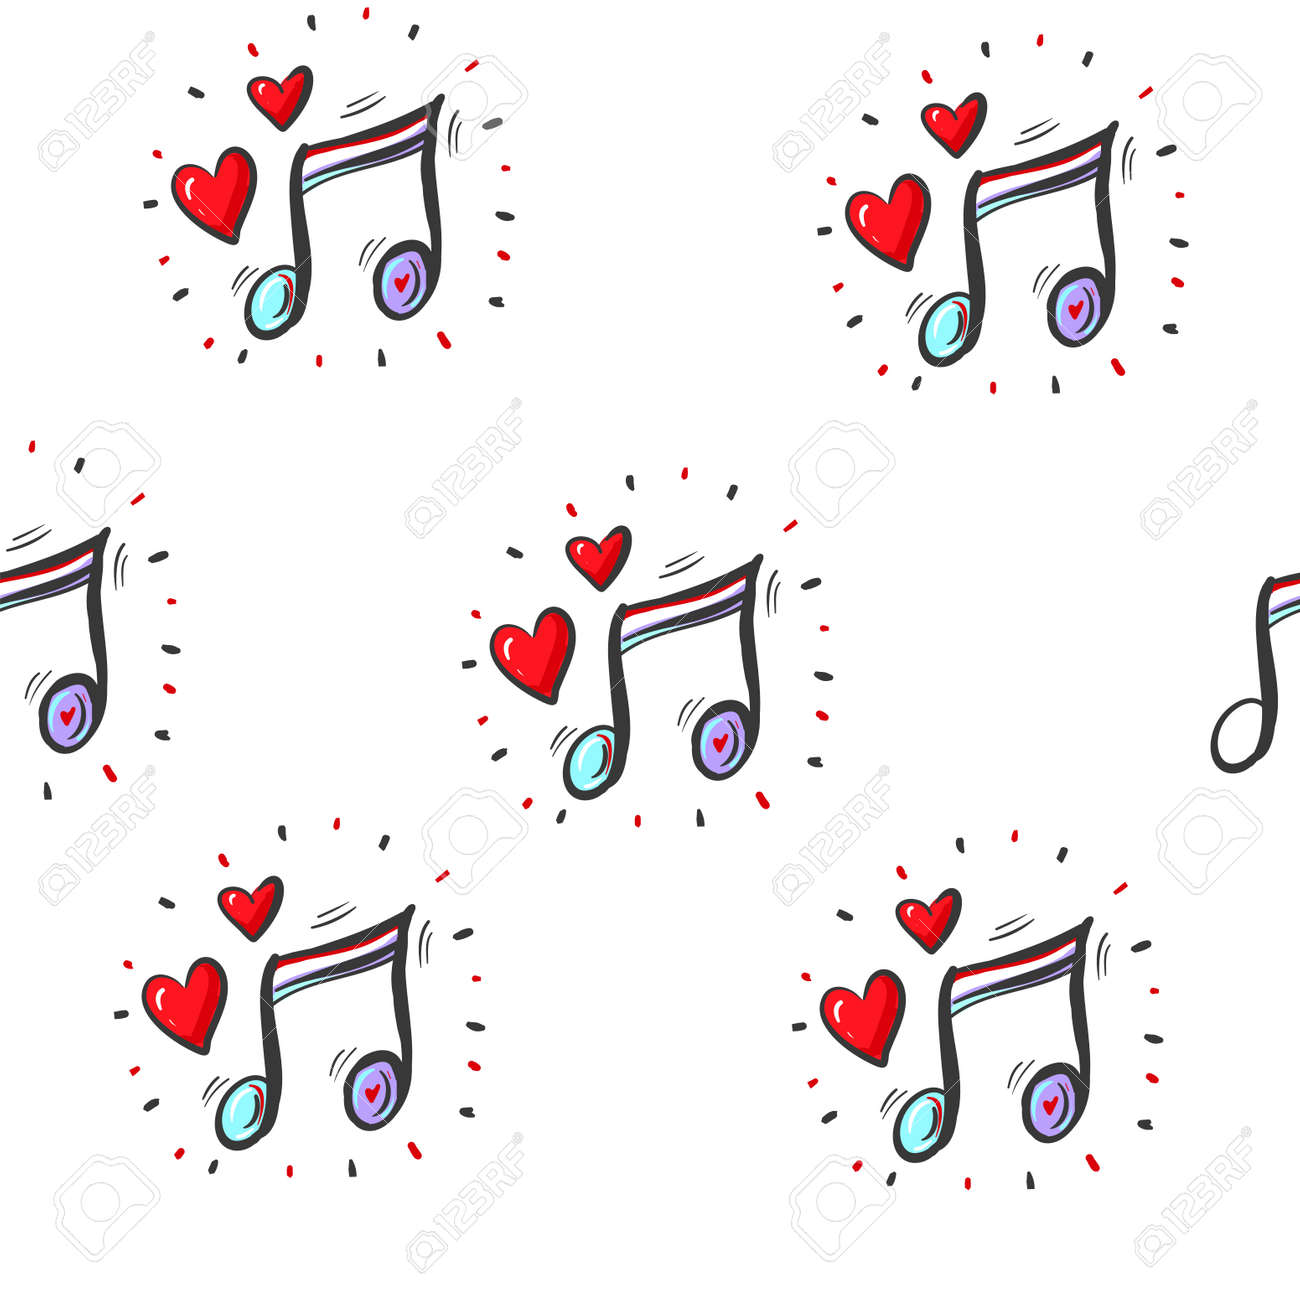 seamless pattern wallpaper of musical notes and hearts. Vector Illustration - 164110833